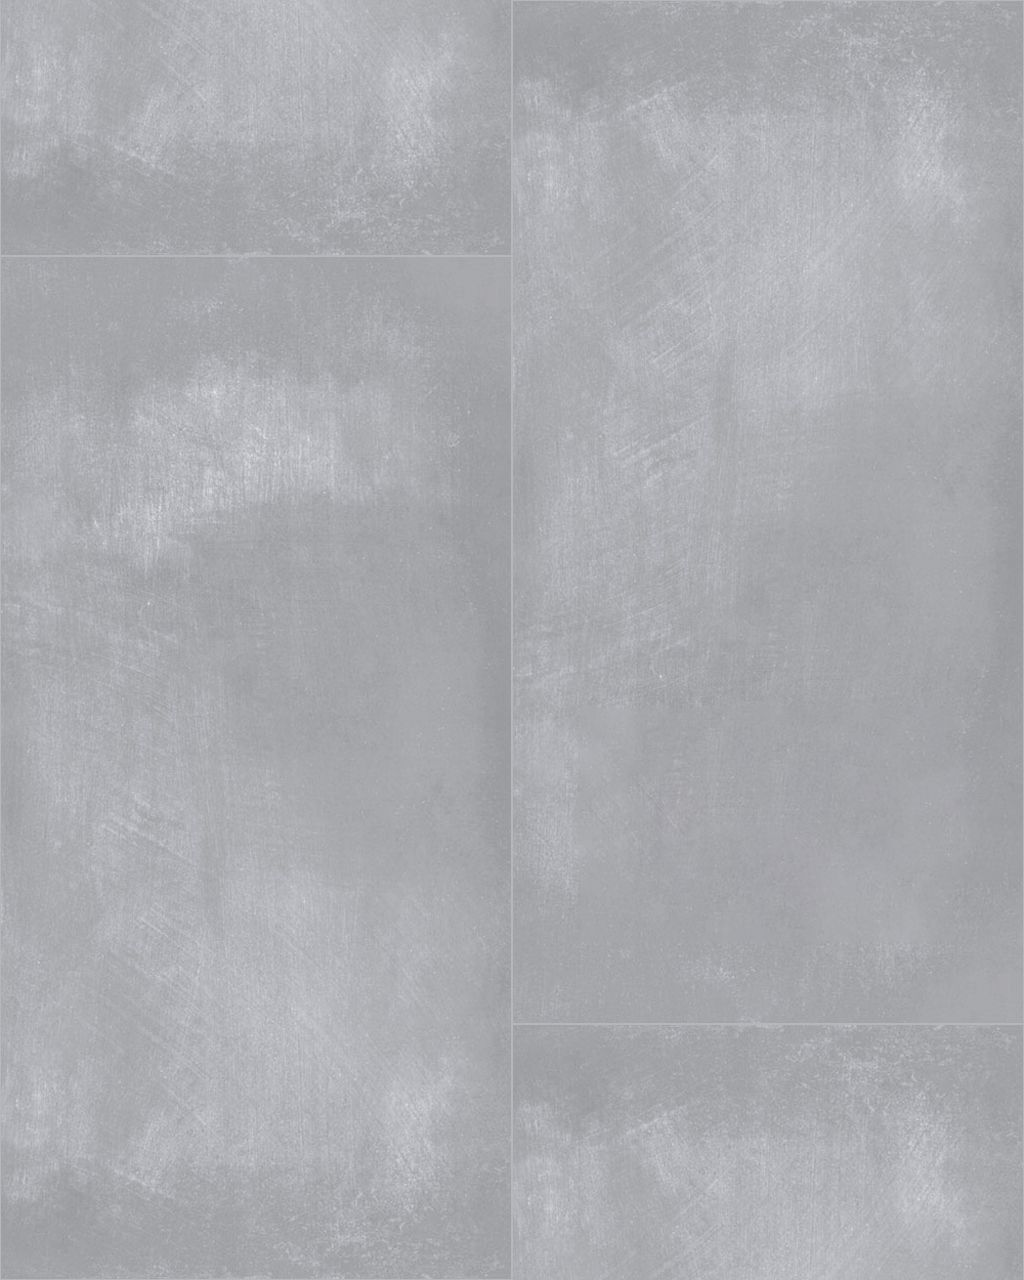 An overall pattern of our Arkety Gris 24 x 48 Porcelain Tile